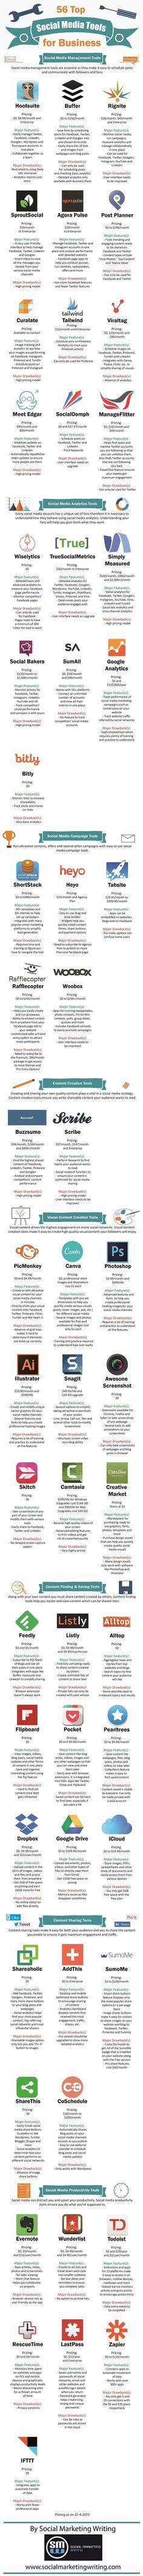 56 Top Social Media Tools For Business - #infographic